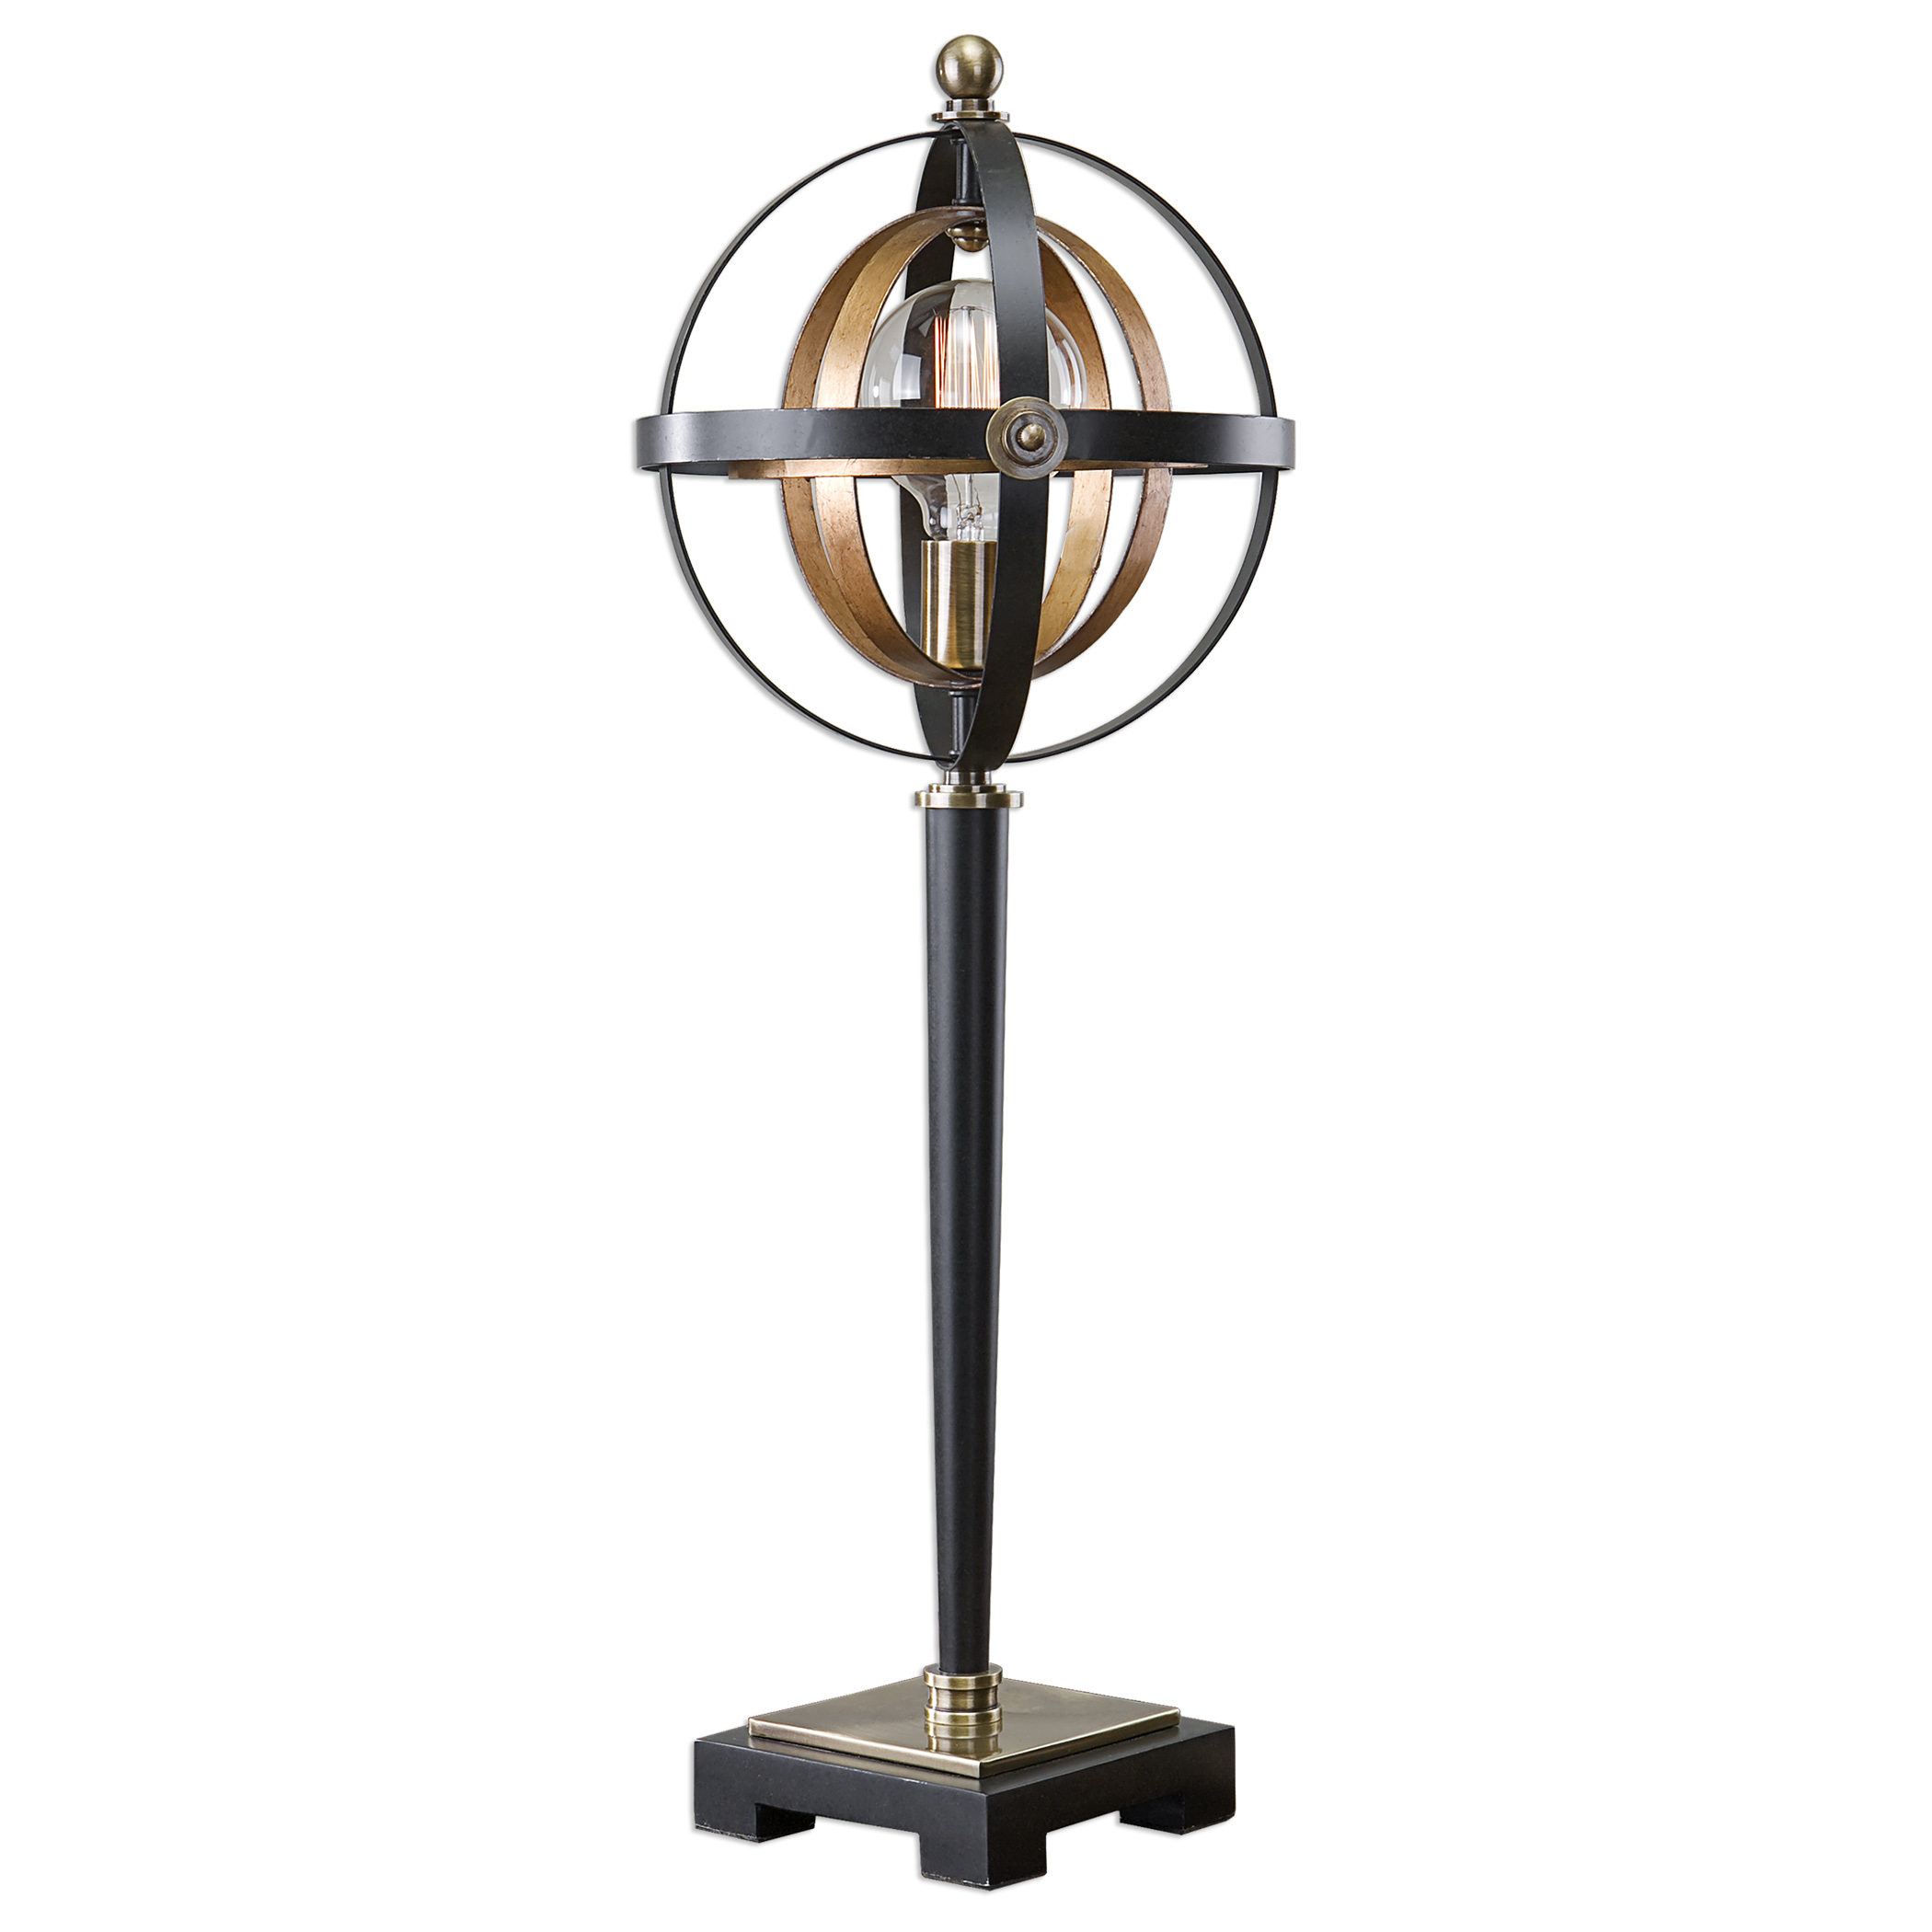 Accent Lamps Rondure Sphere Table Lamp by Uttermost at Upper Room Home Furnishings